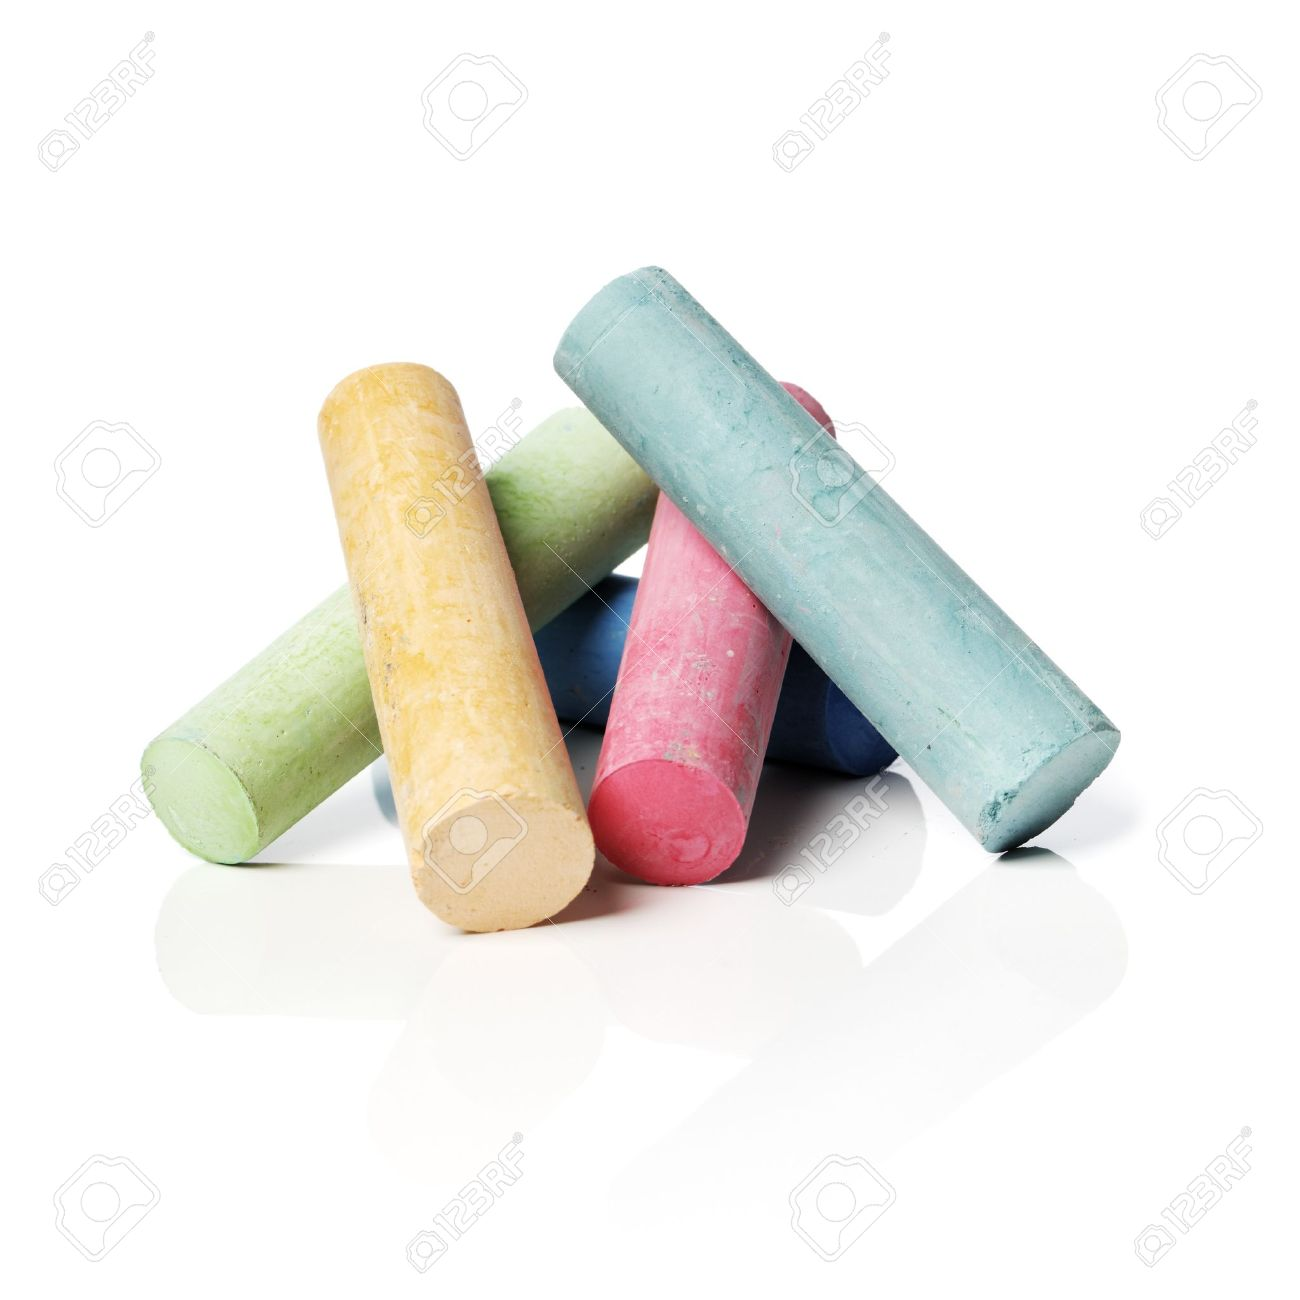 Colored sidewalk chalks on reflective background with natural shadows. Stock Photo - 7492011